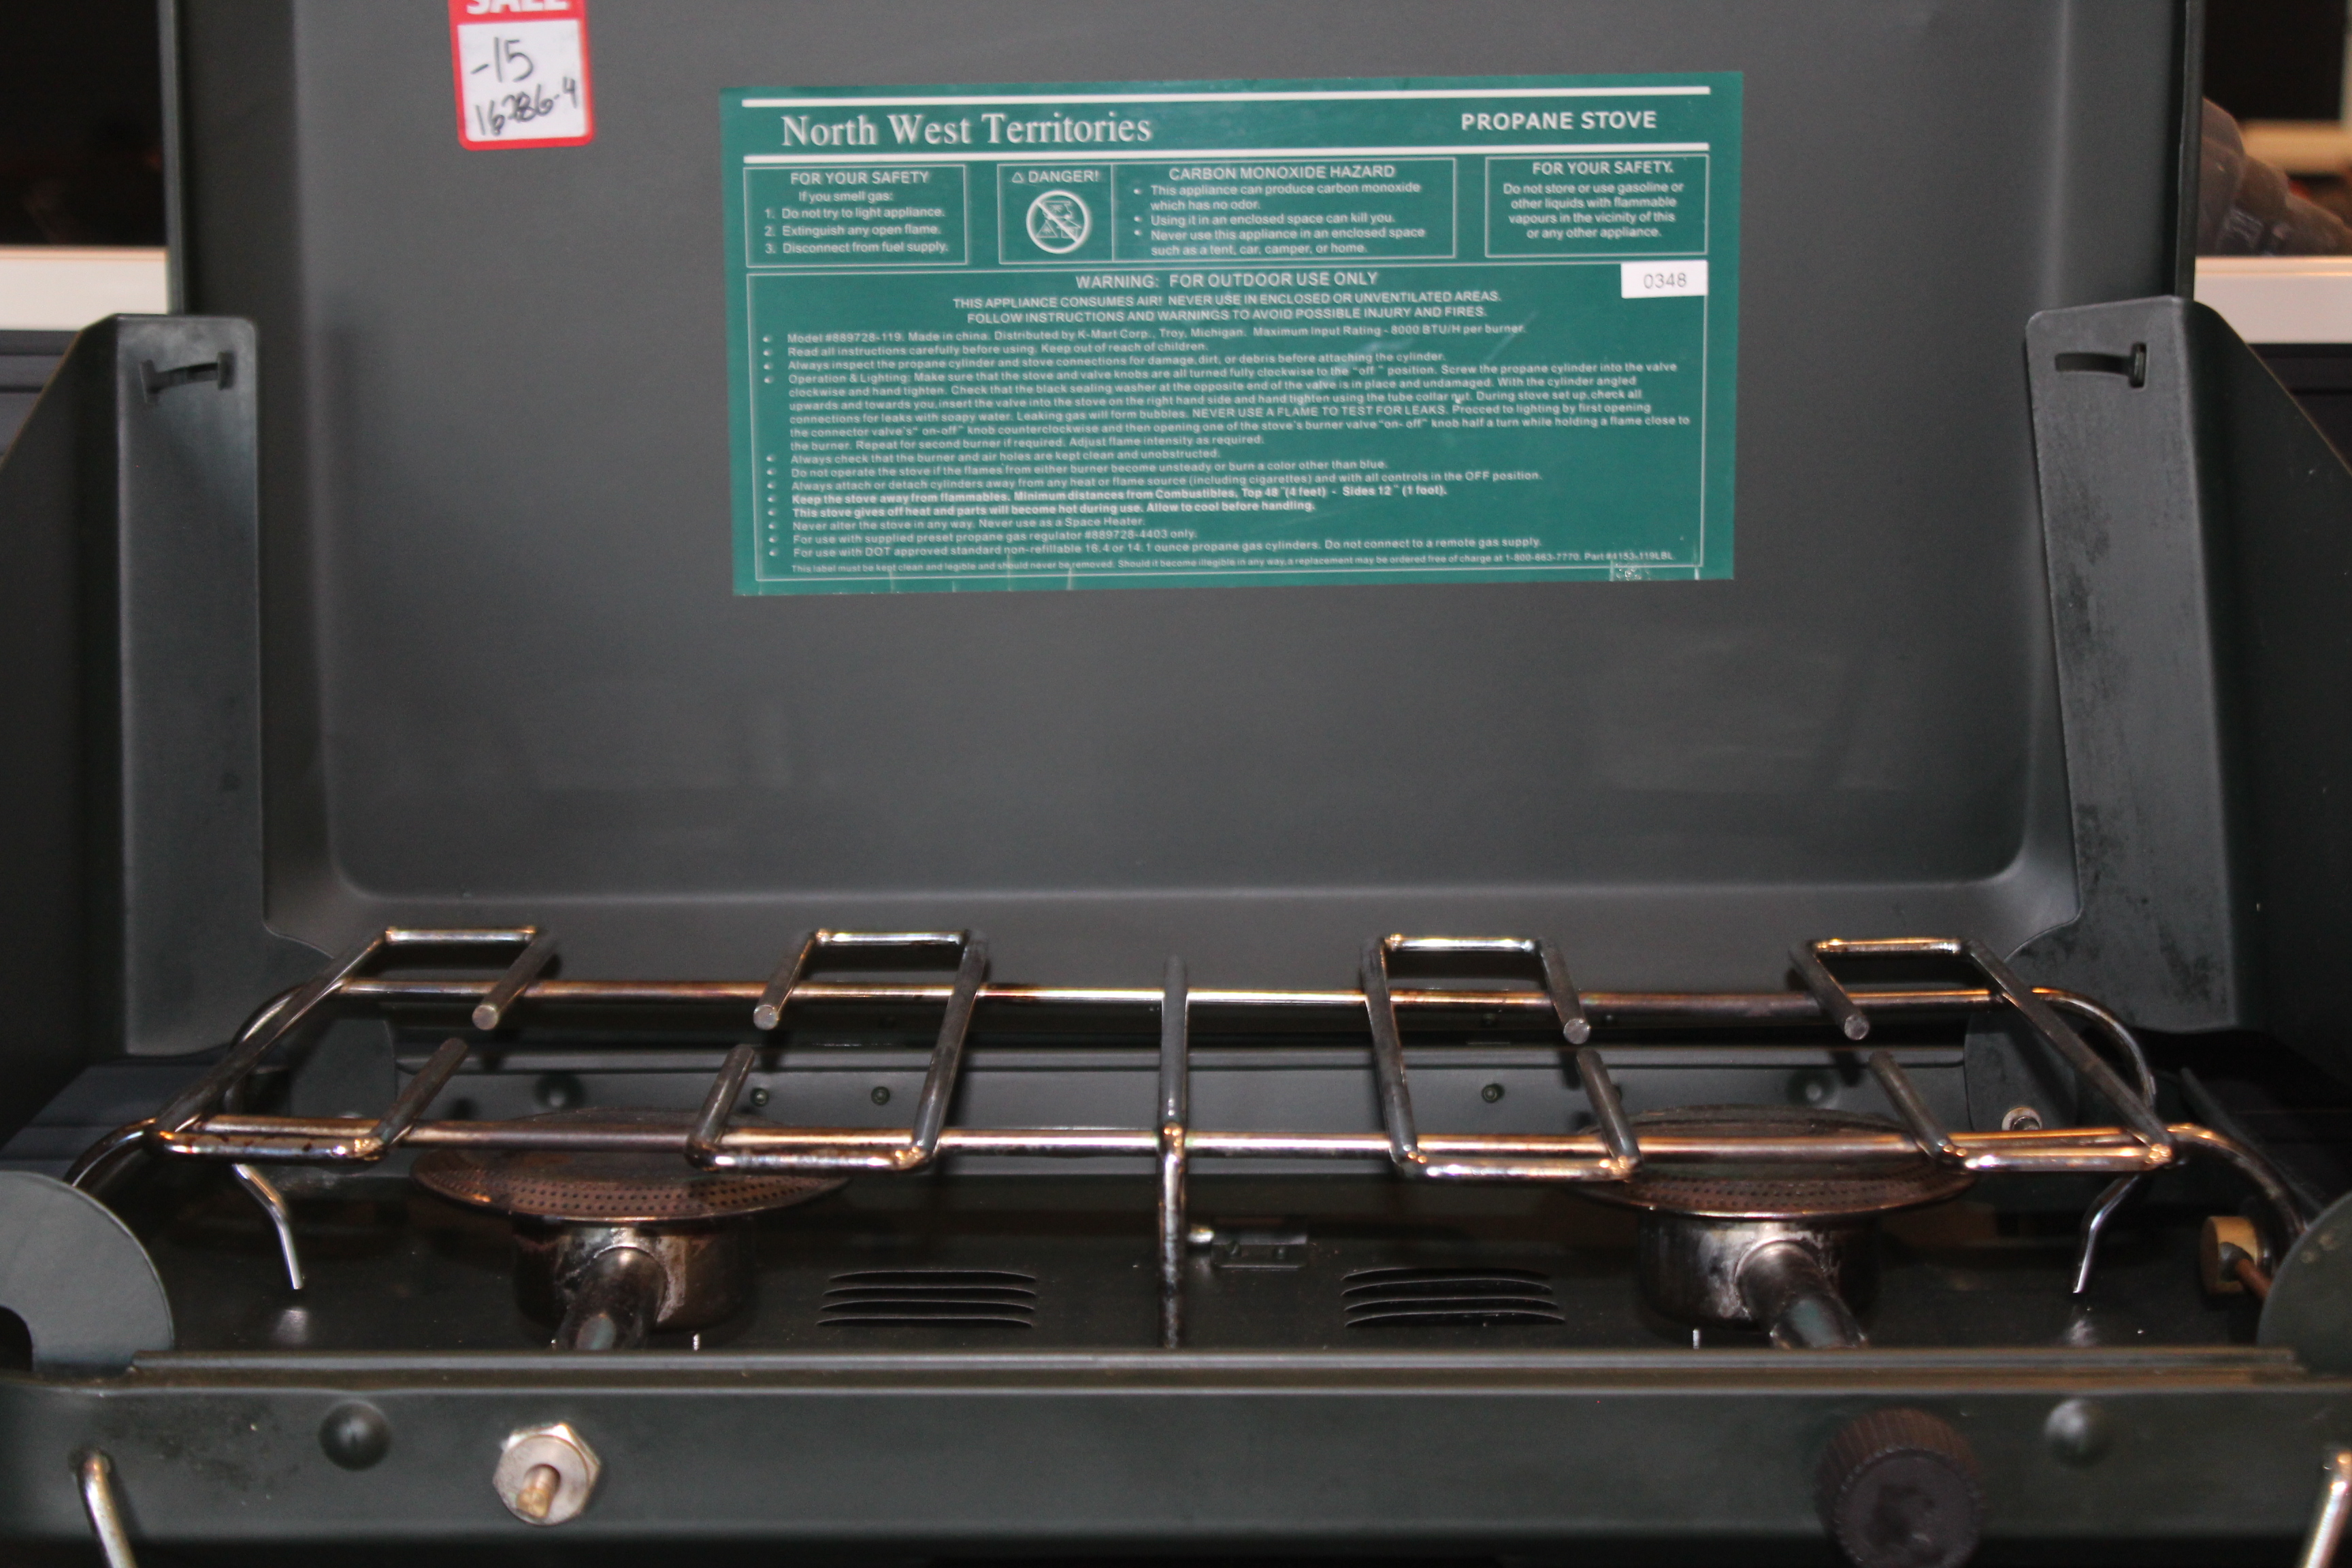 North West Territories Propane Table Stove